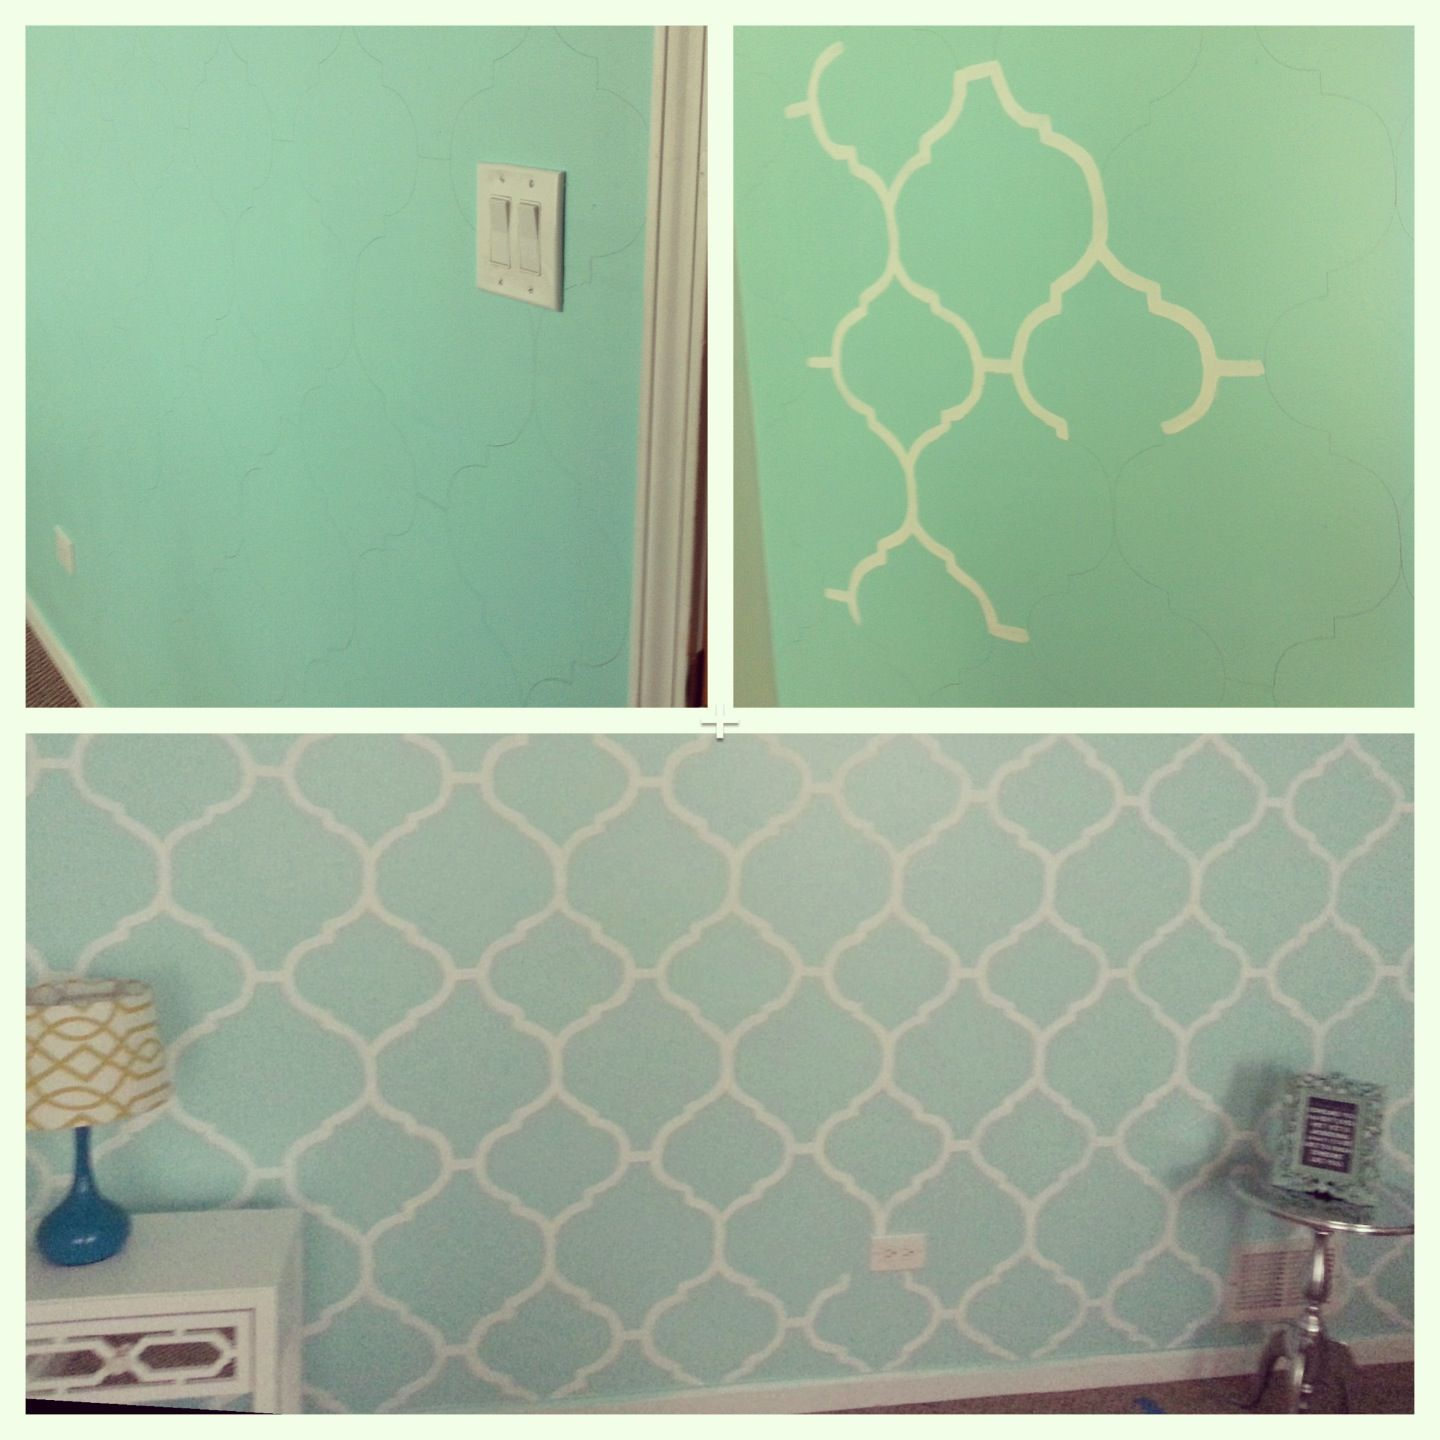 My Mint Green Bedroom Accent Wall. Freehand Painting.